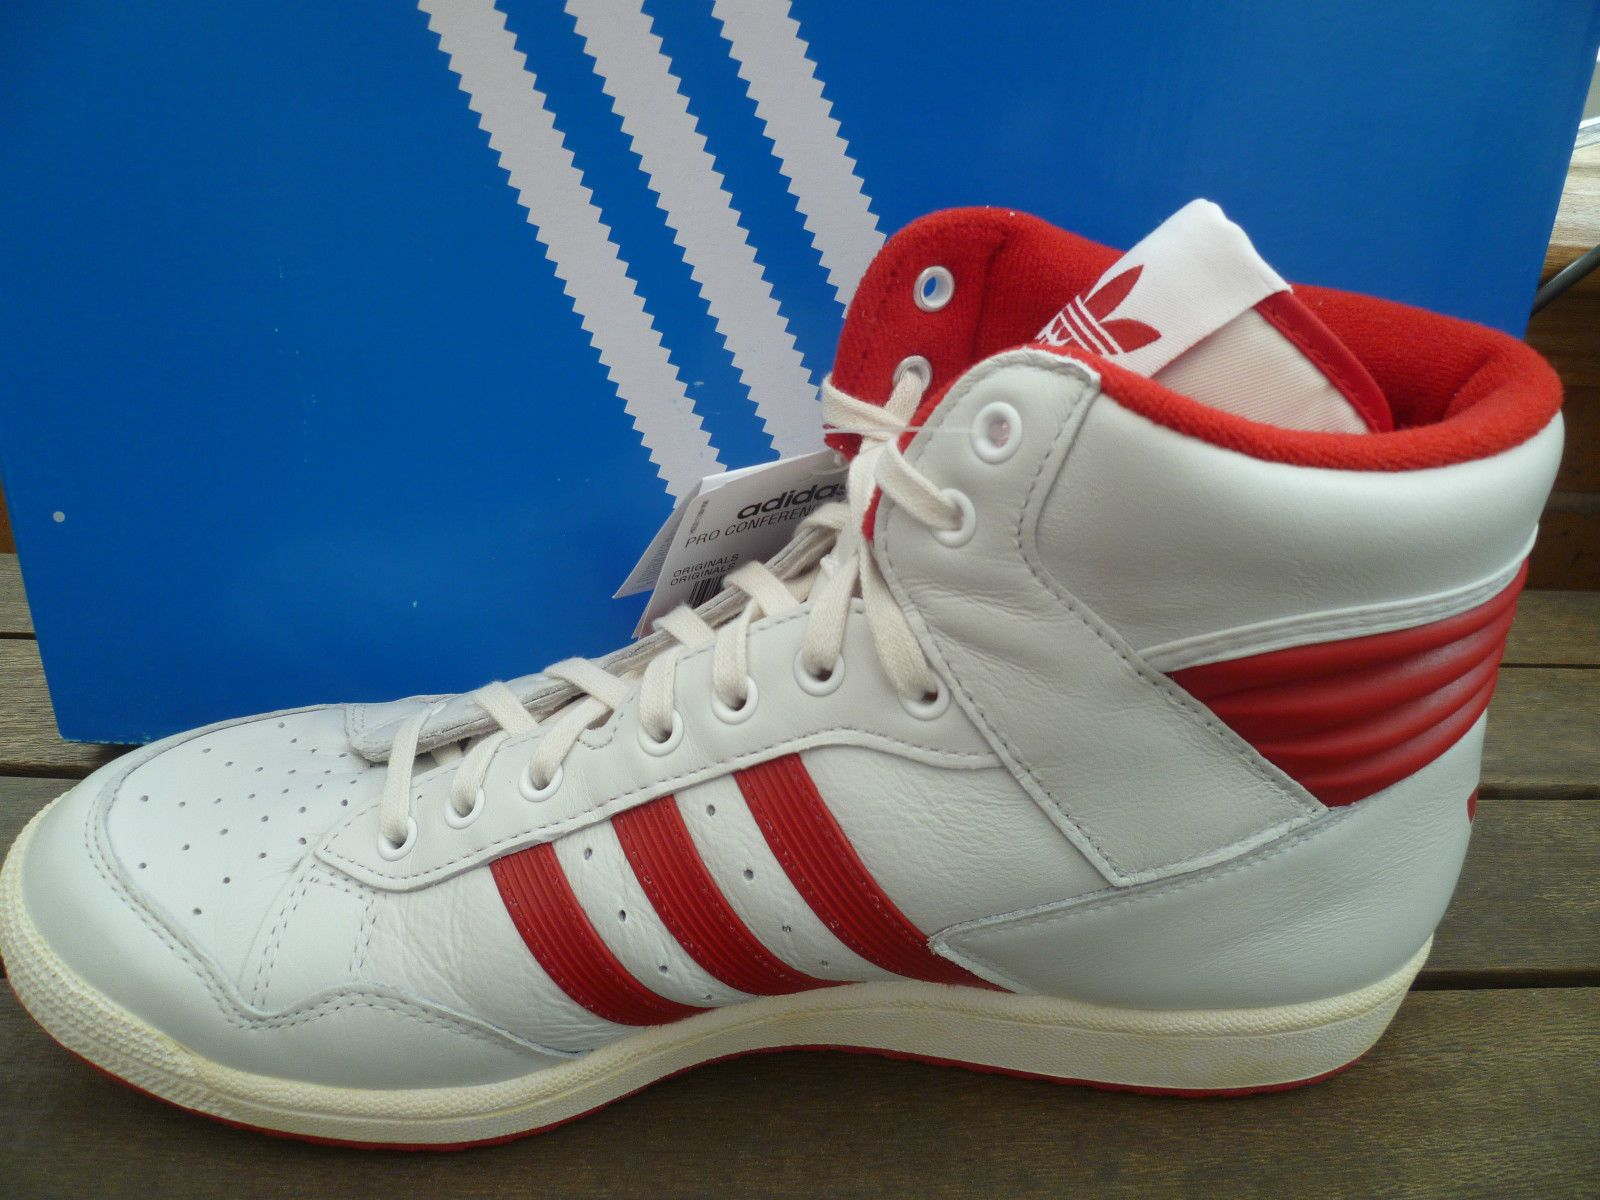 Adidas Pro Conference Hi Vintage Basketball Shoes Trainers